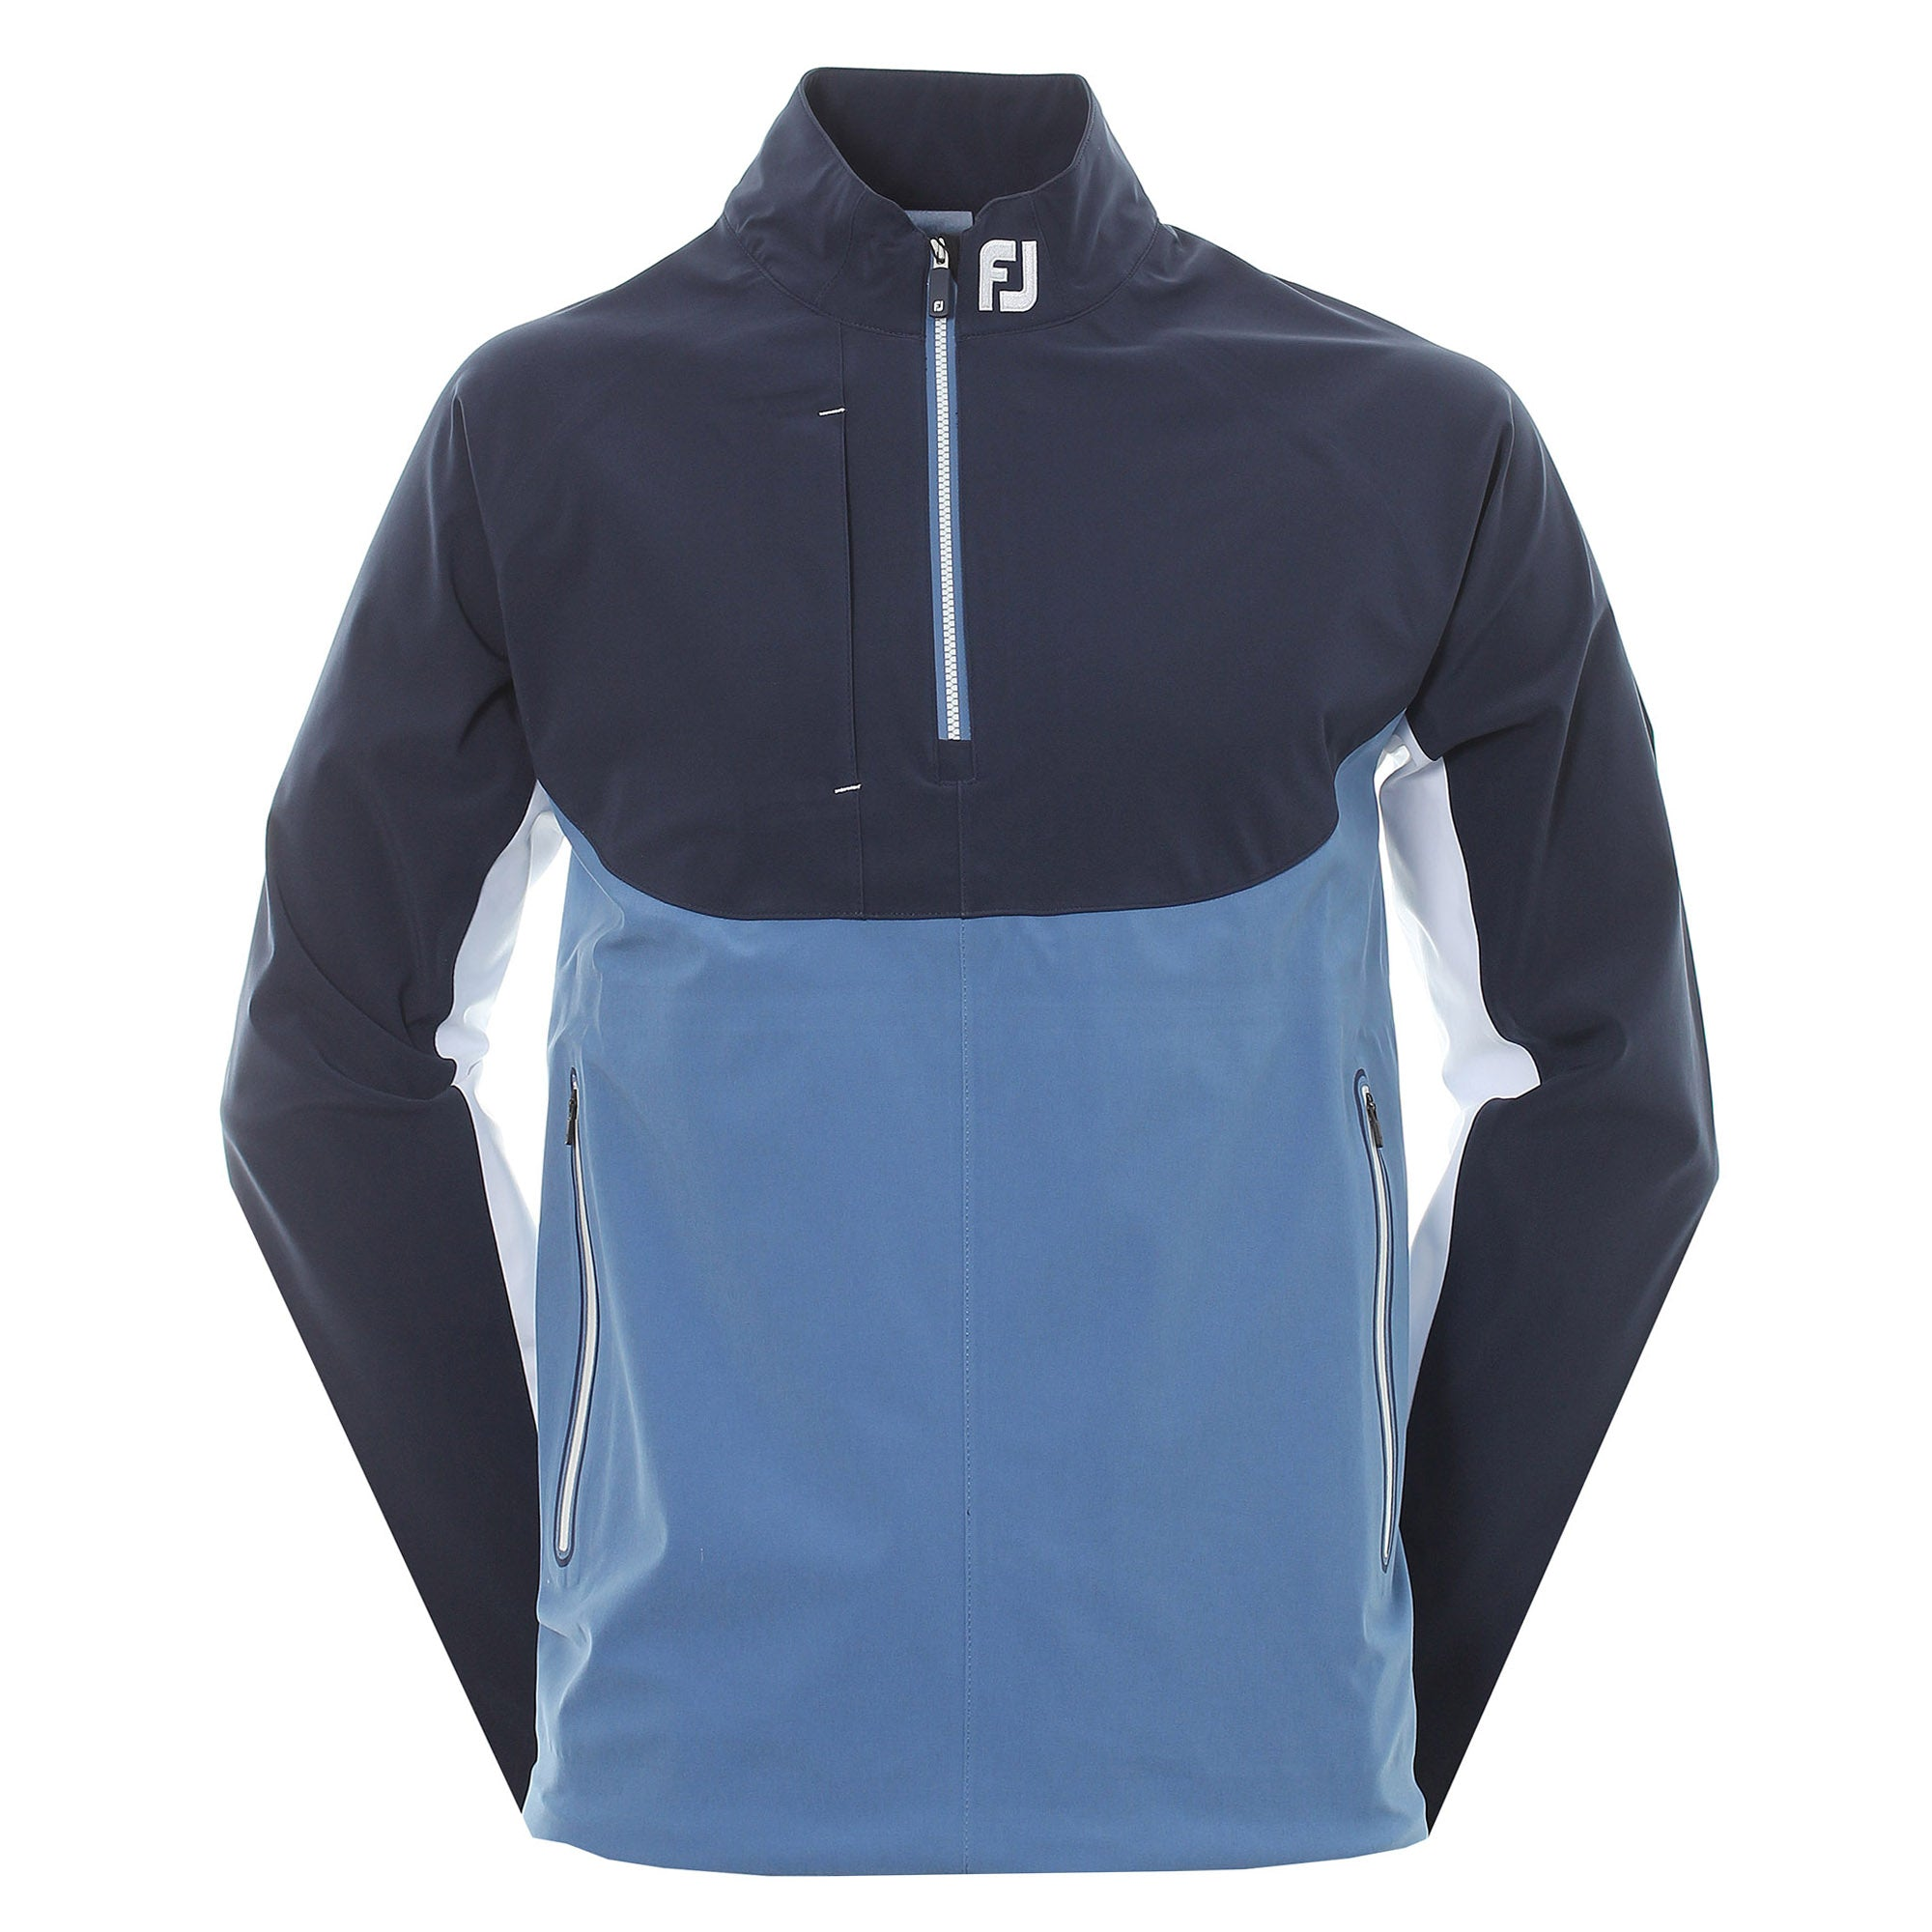 FootJoy DryJoys Tour LTS Rain Shirt 95022